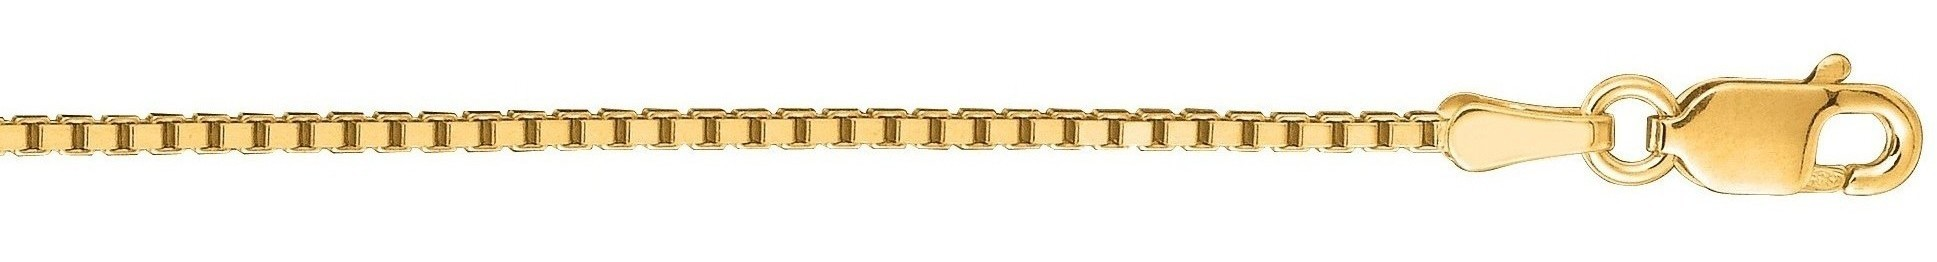 "16"" 14K Yellow Gold 1.1mm (0.04"") Polished Classic Box Chain w/ Lobster Clasp"